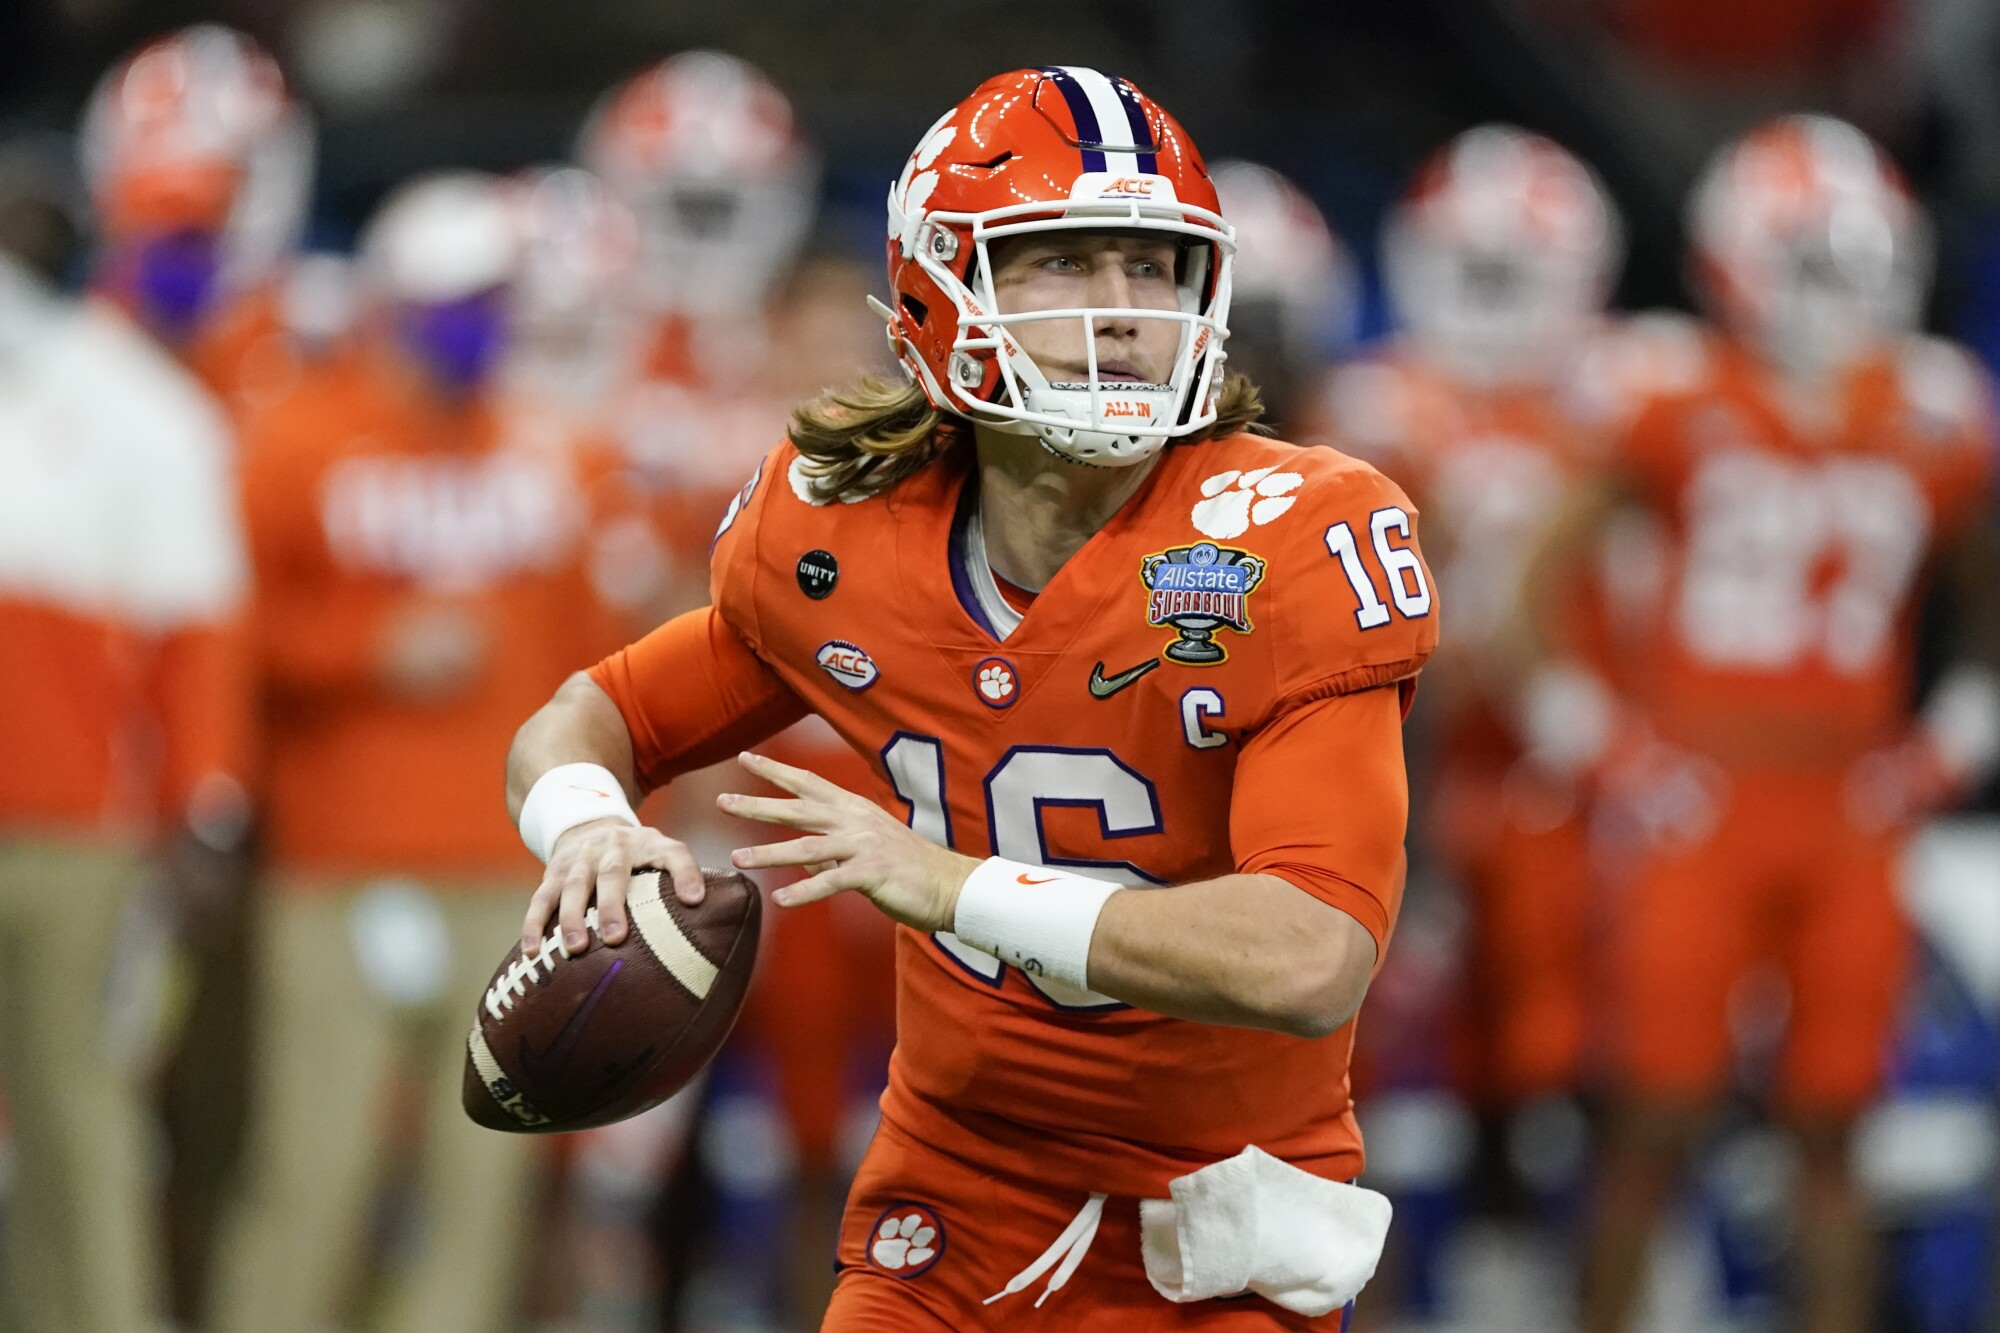 Clemson quarterback Trevor Lawrence looks to pass during a game.